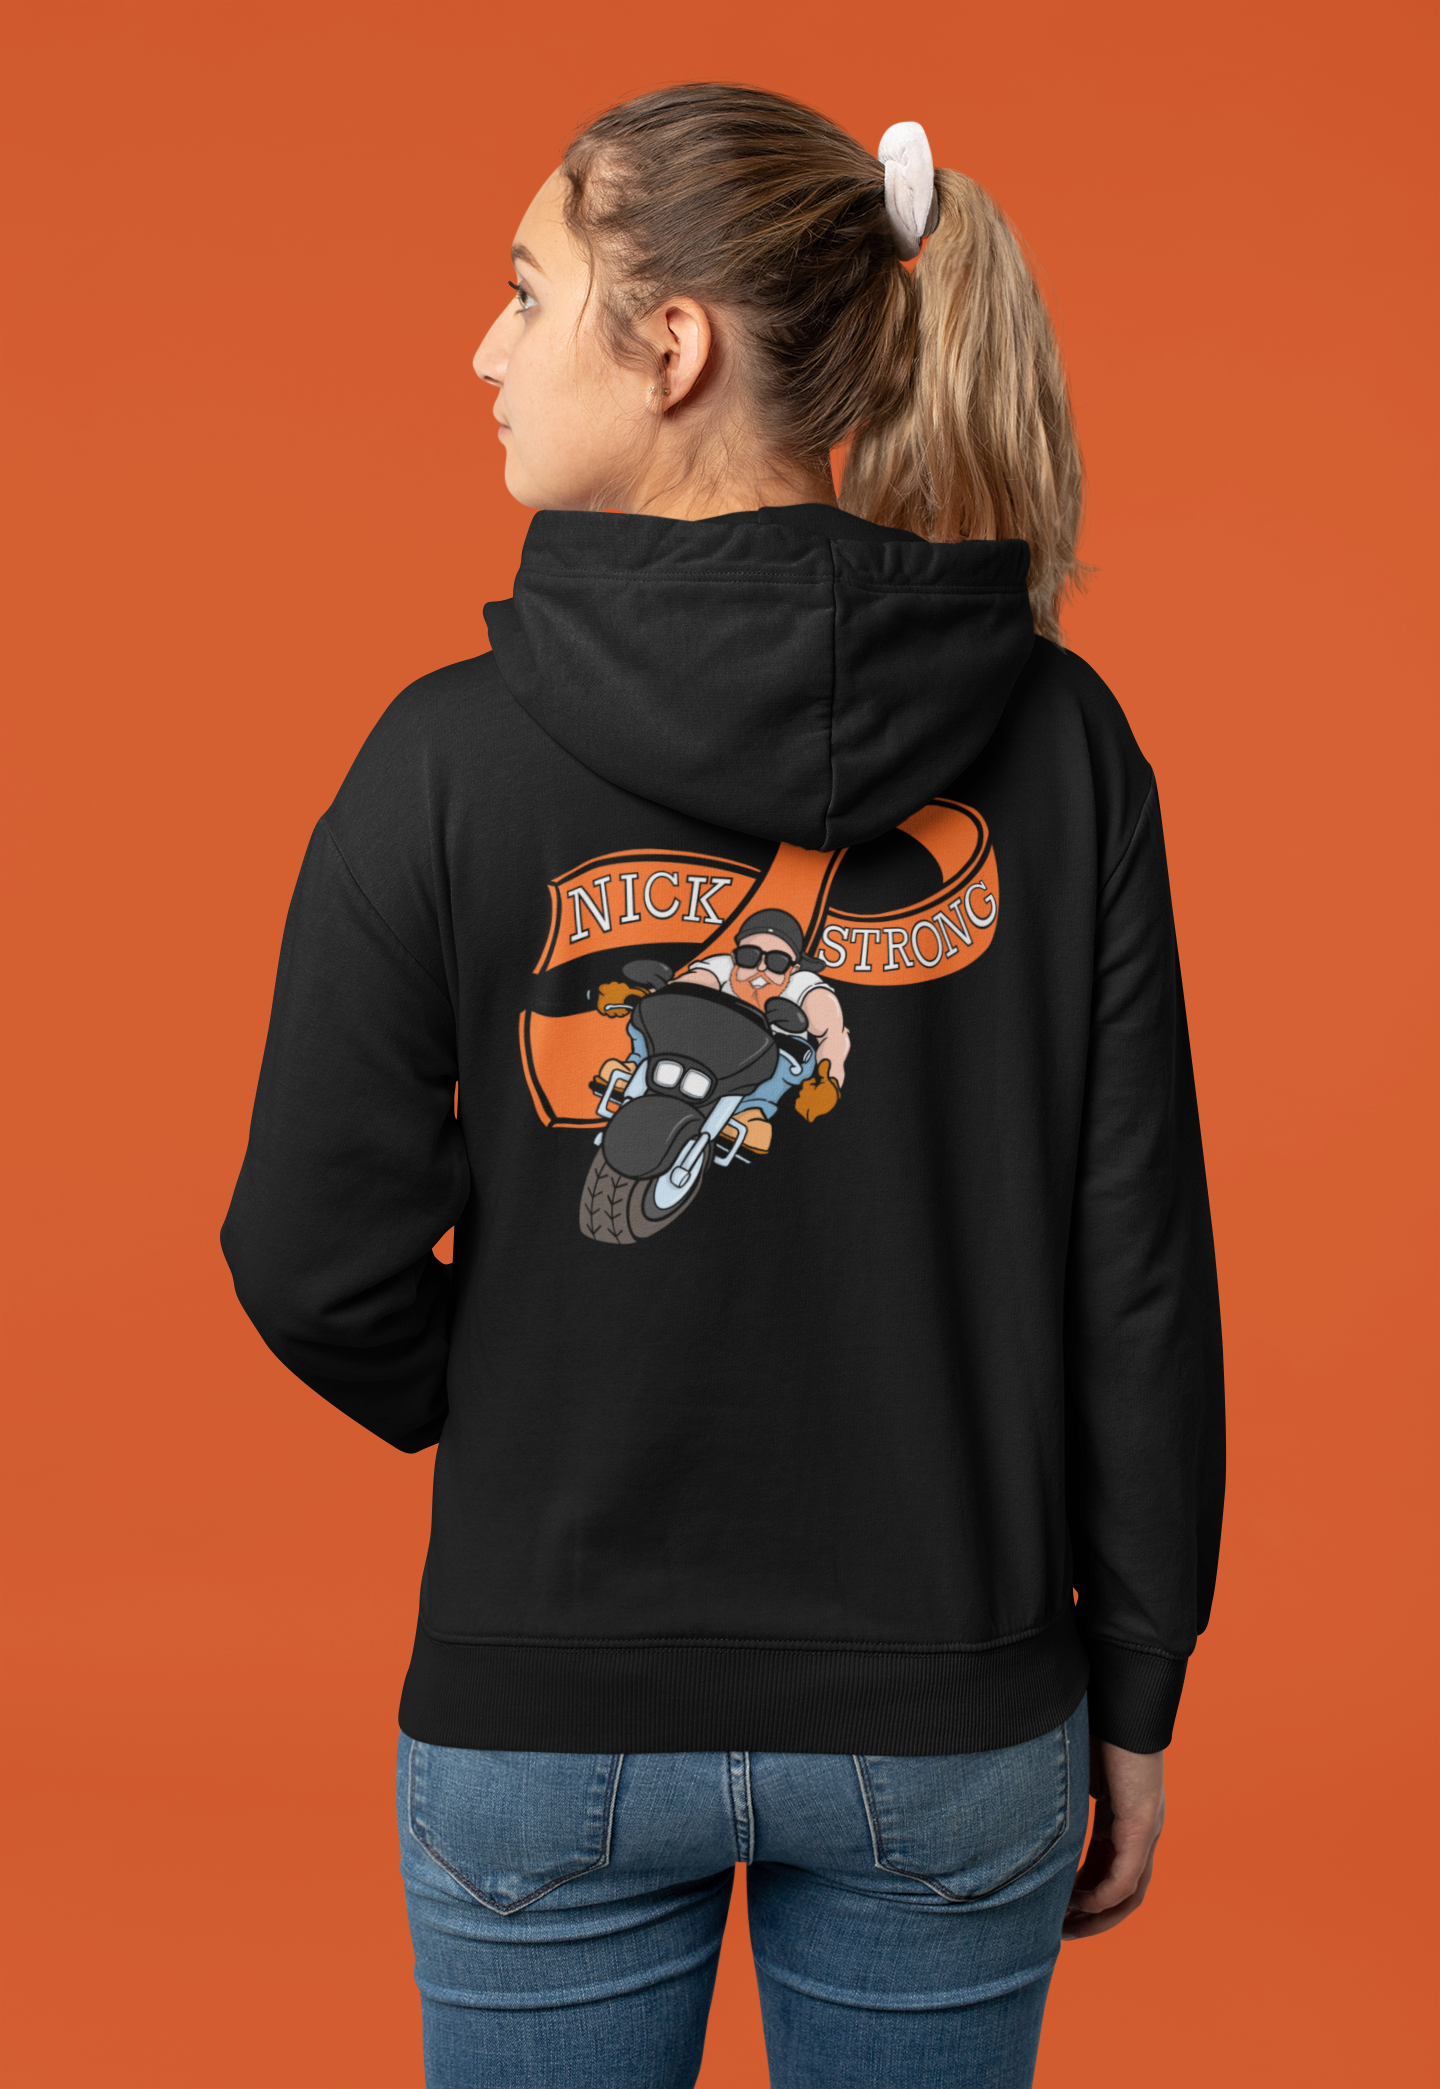 NICK STRONG Requested BACK-PRINT Zip-up Hoodie